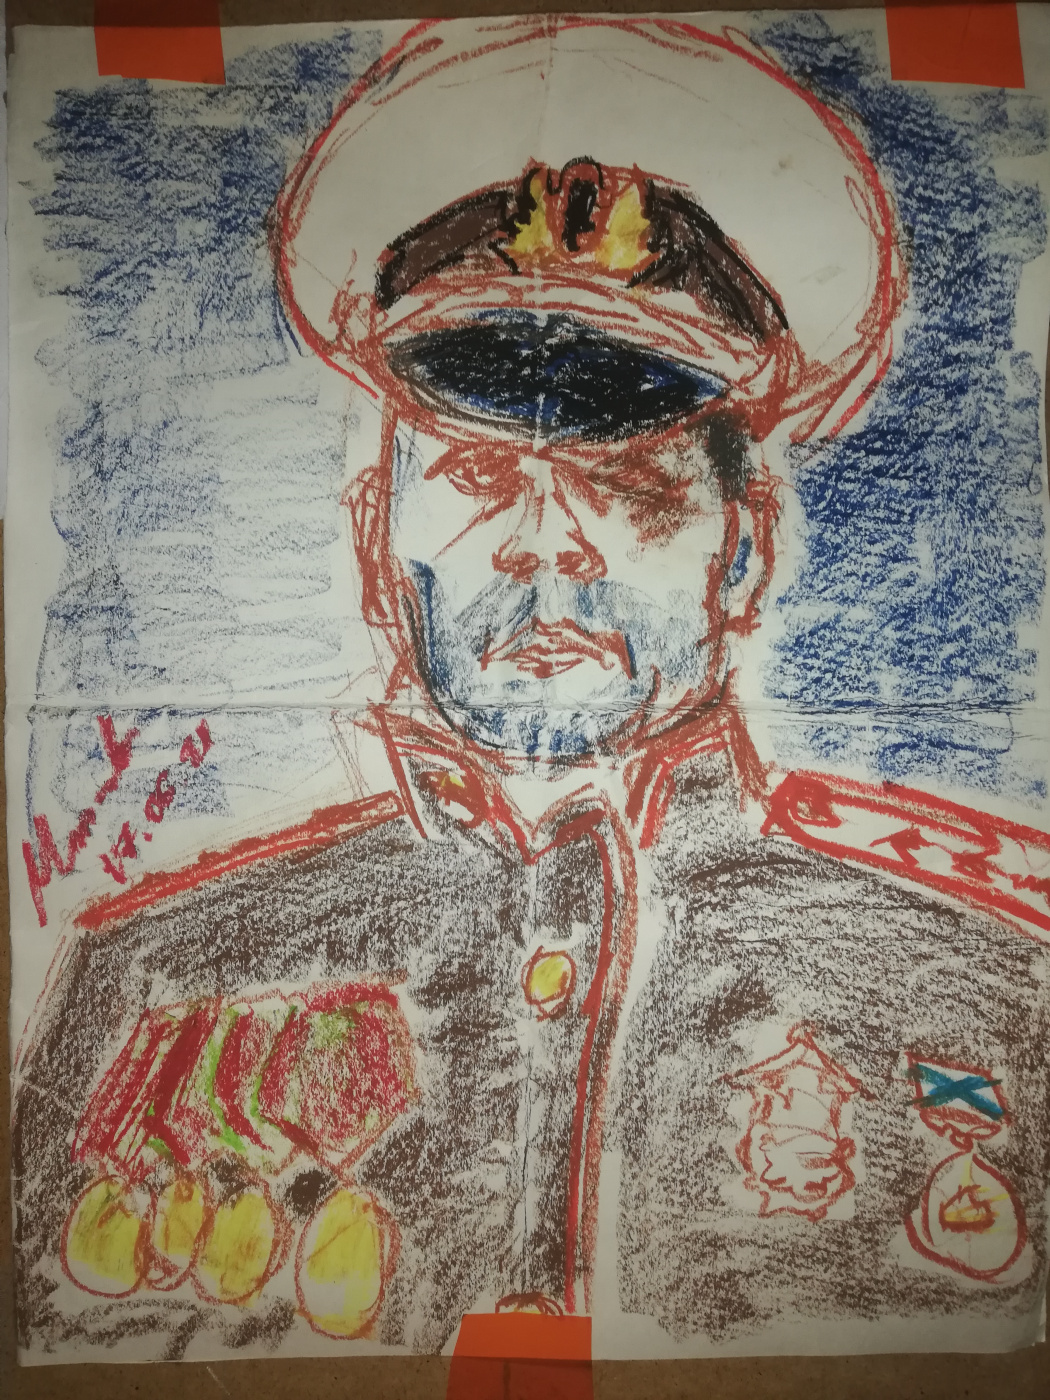 Andrew Markoff. Sketch for the portrait of Art. midshipman